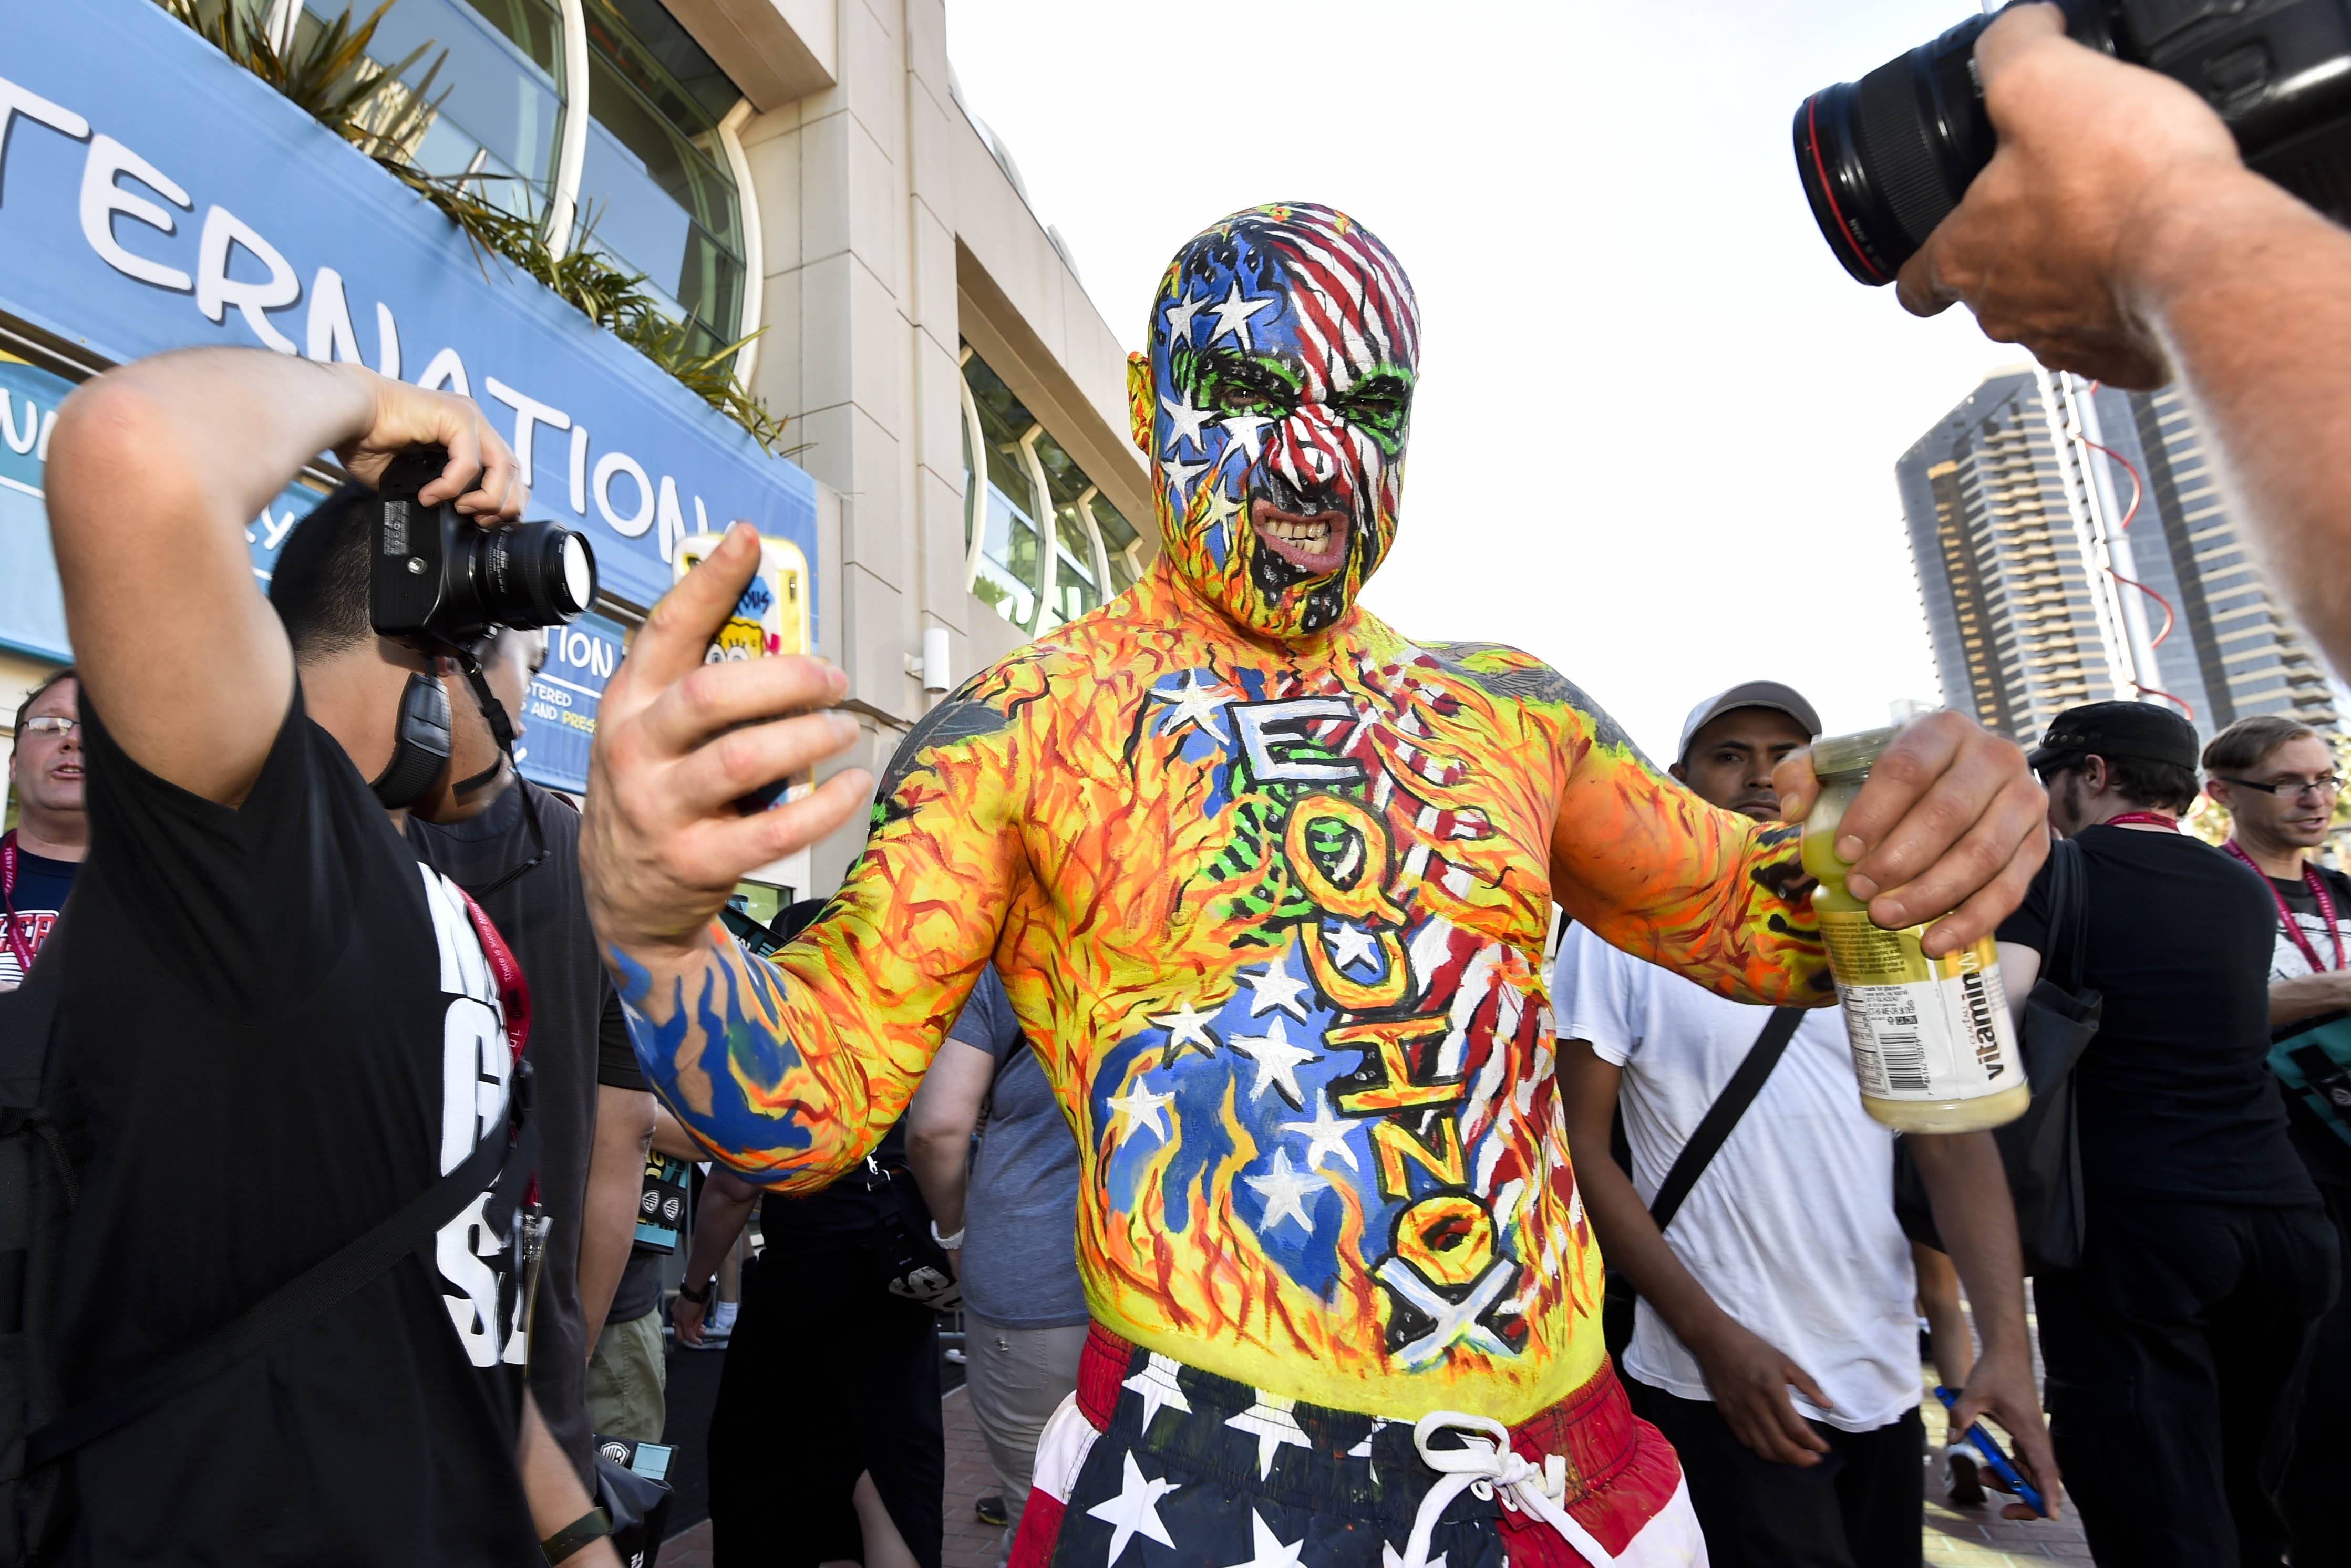 Fans like Chris Keyes were ready in costume for Wednesday's preview night at the 2014 Comic-Con International Convention that officially opens today in San Diego.